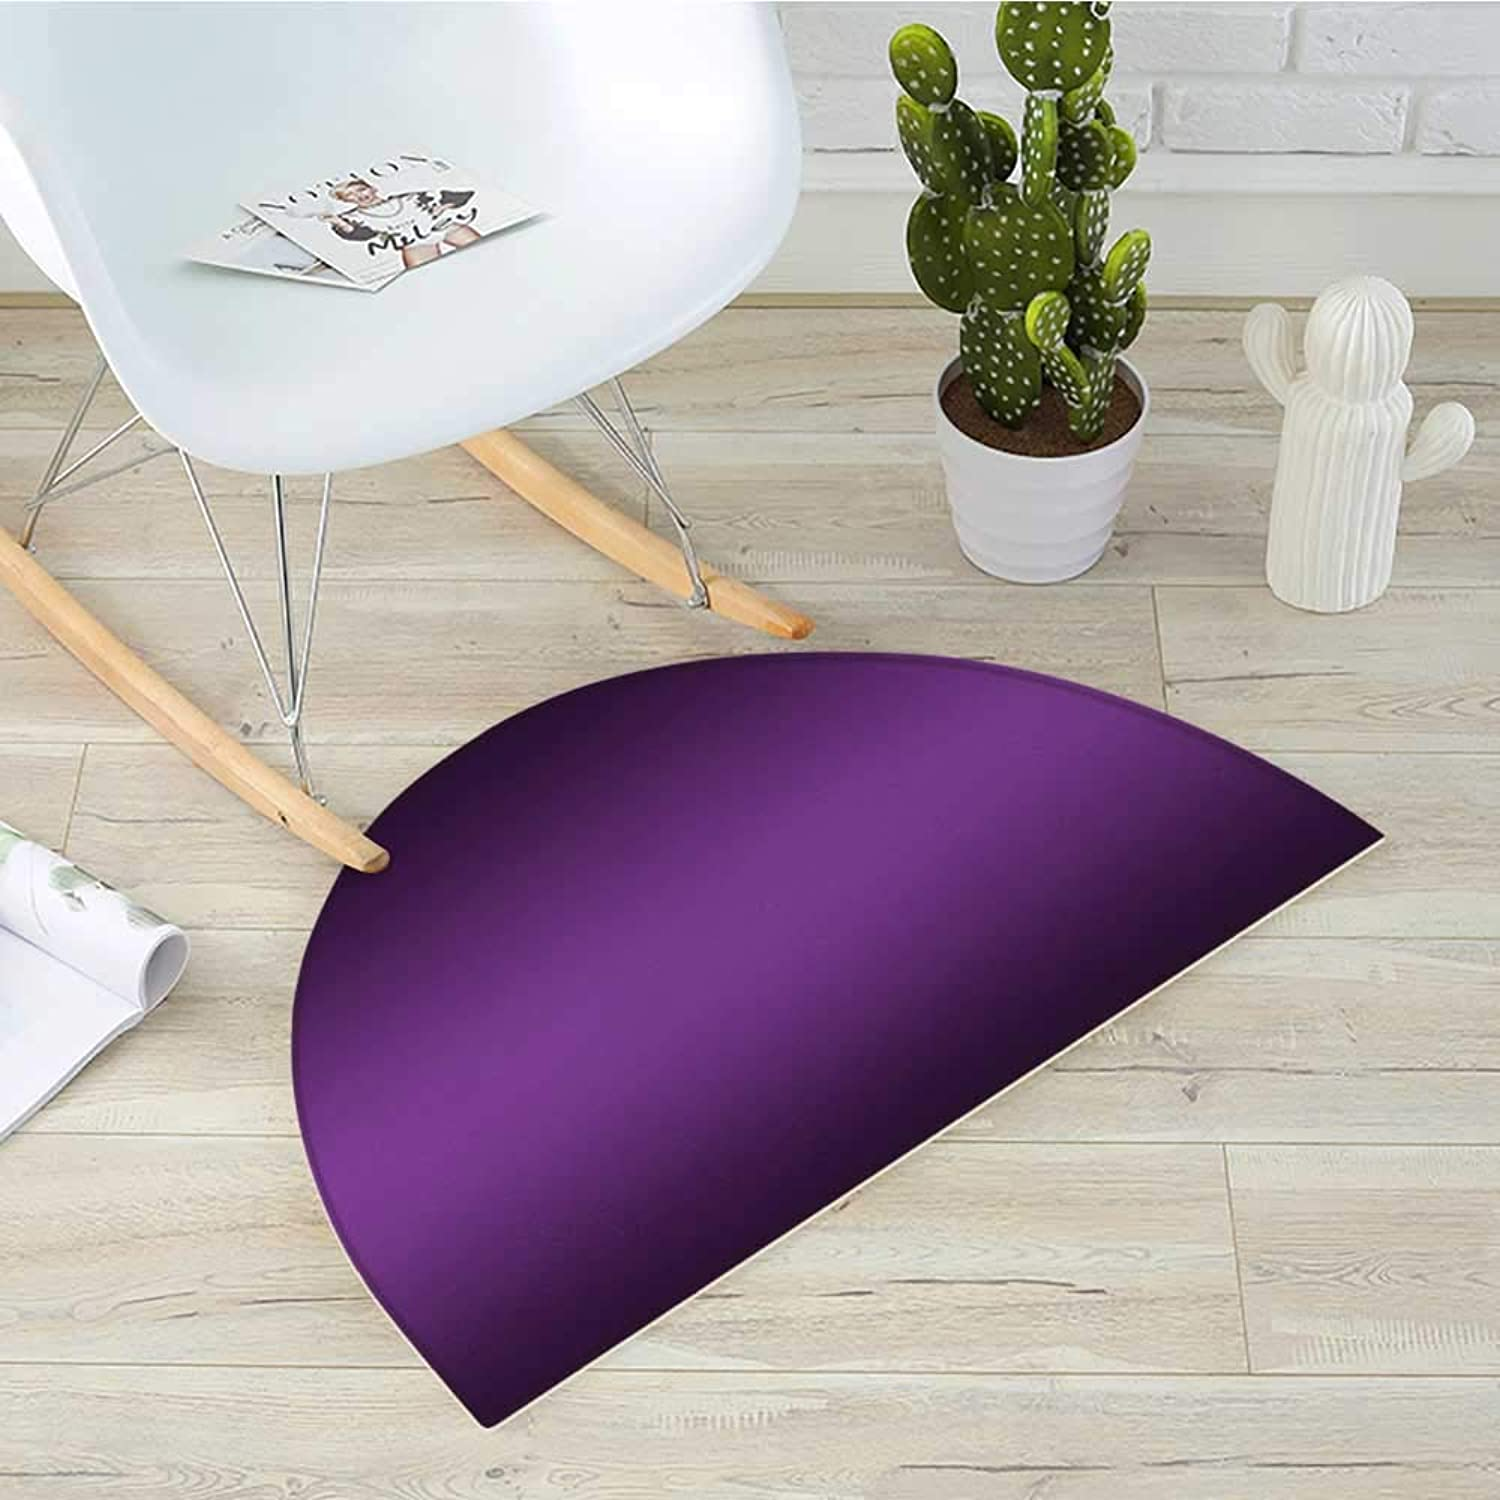 Ombre Semicircular CushionCinema Curtain Movies Series Inspired color Ombre Design Digital Artsy Styled Print Image Entry Door Mat H 39.3  xD 59  Purple